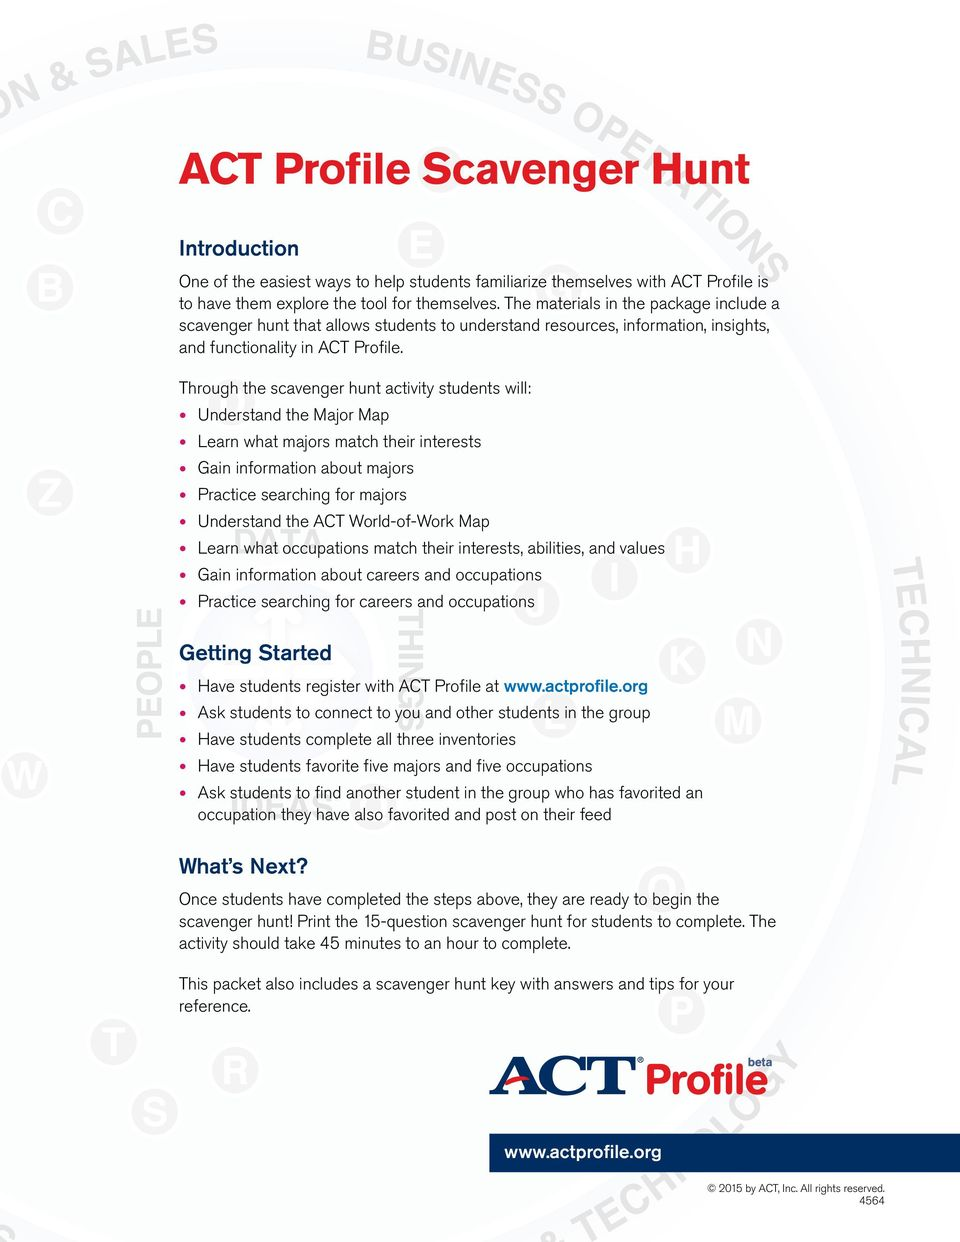 Act profile scavenger hunt pdf through the scavenger hunt activity students will understand the major map learn what majors match gumiabroncs Gallery